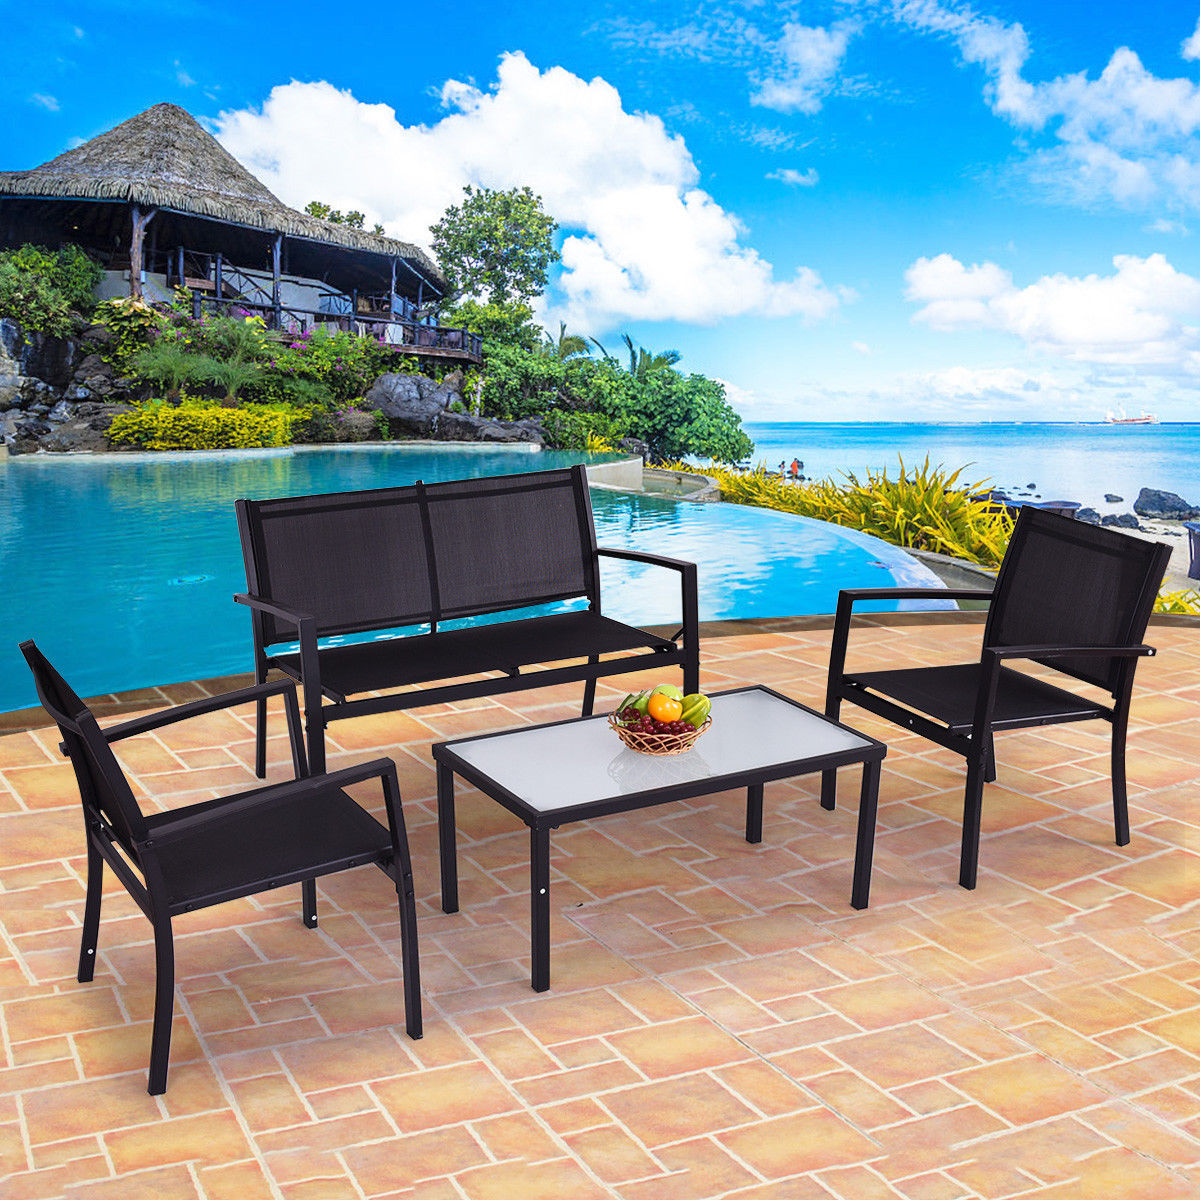 Costway 4 PCS Outdoor Patio Furniture Set Sofa Loveseat Tee Table Garden Yard Pool Side